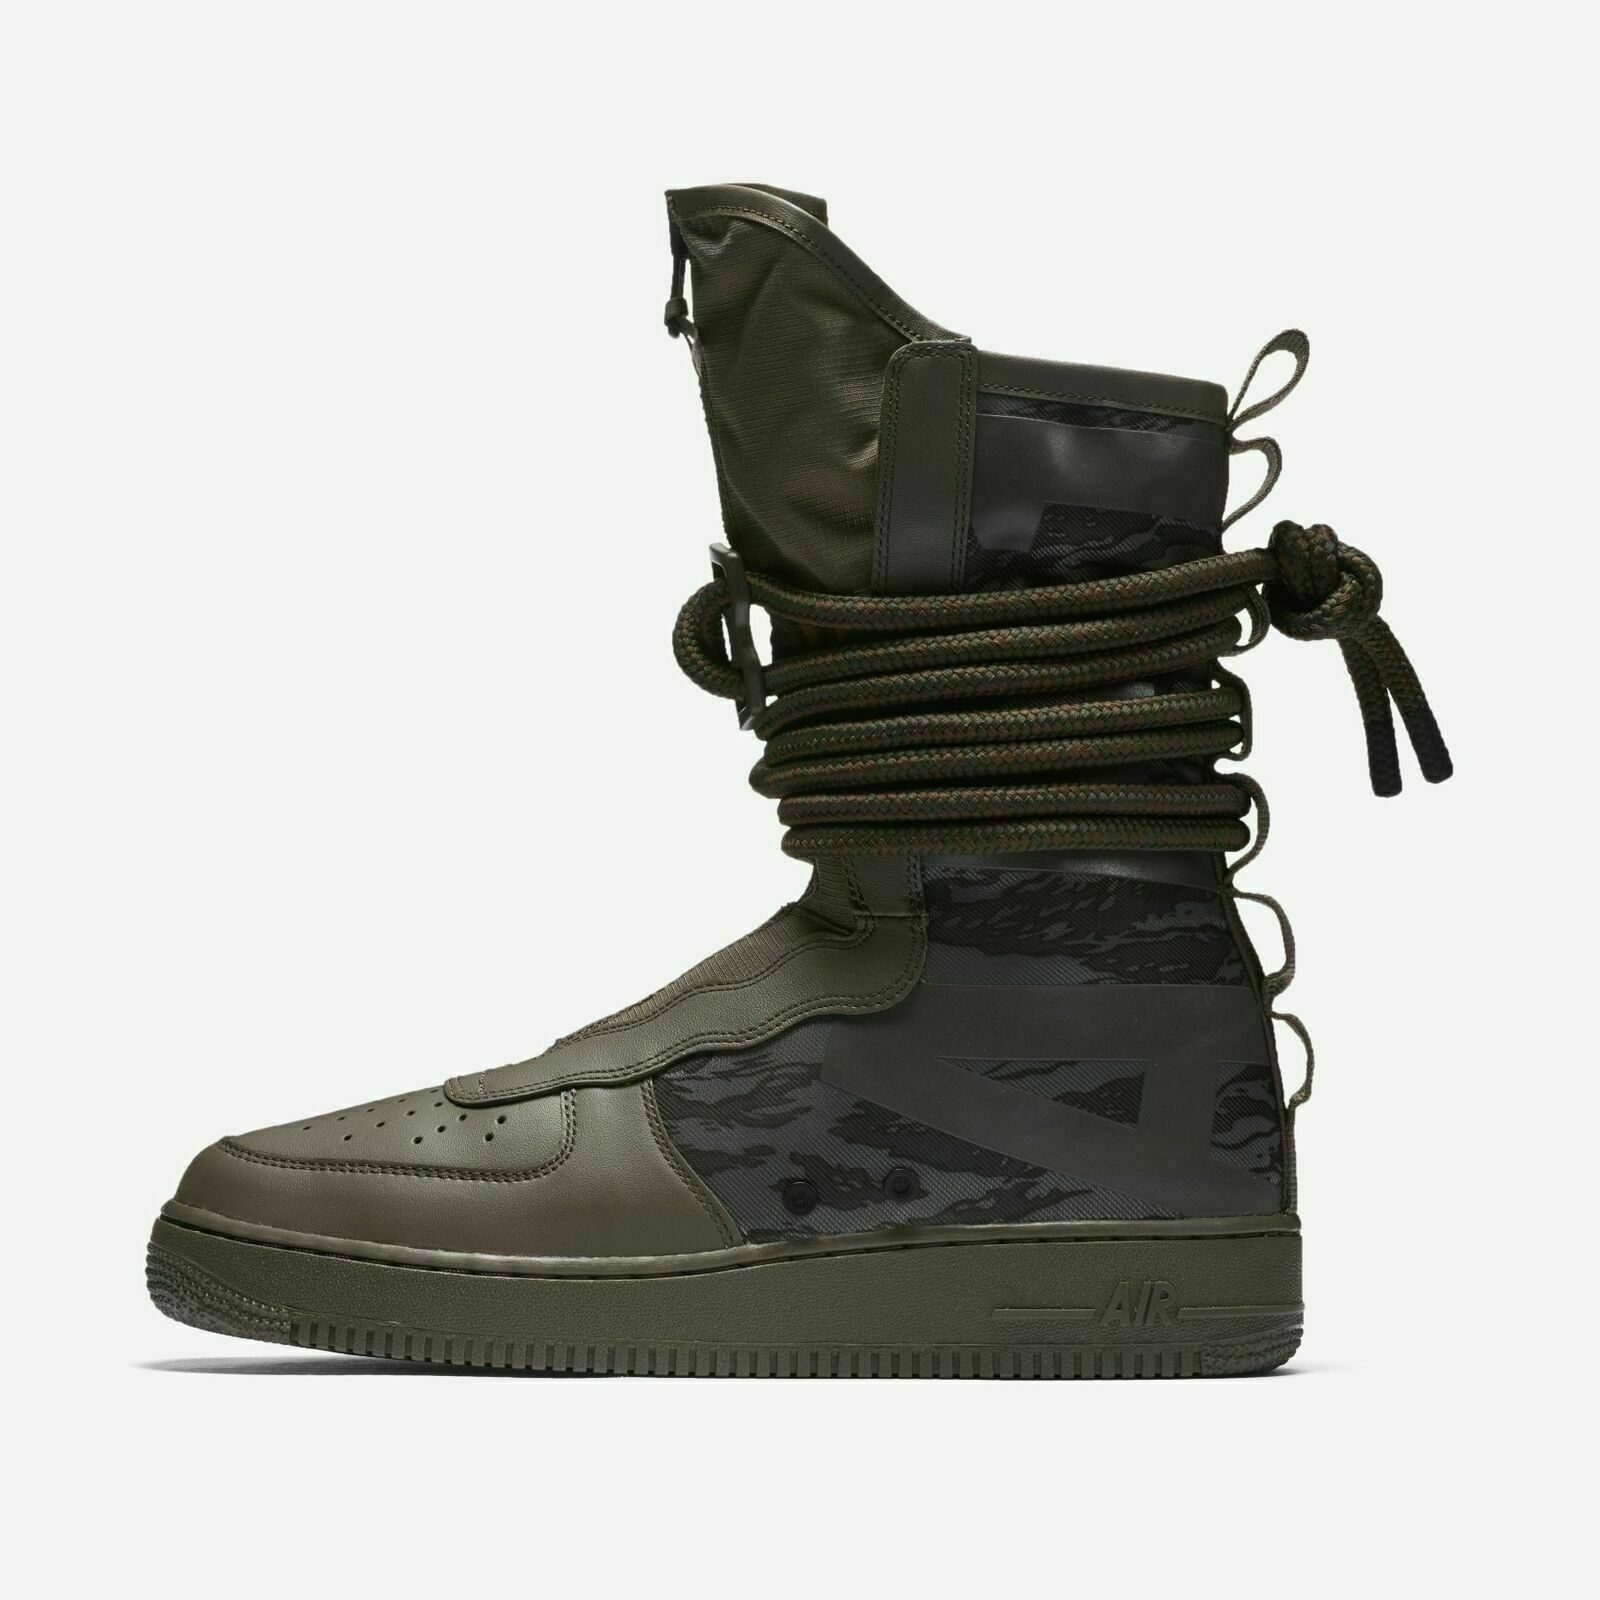 Nike Women's Special Forces Air Force 1